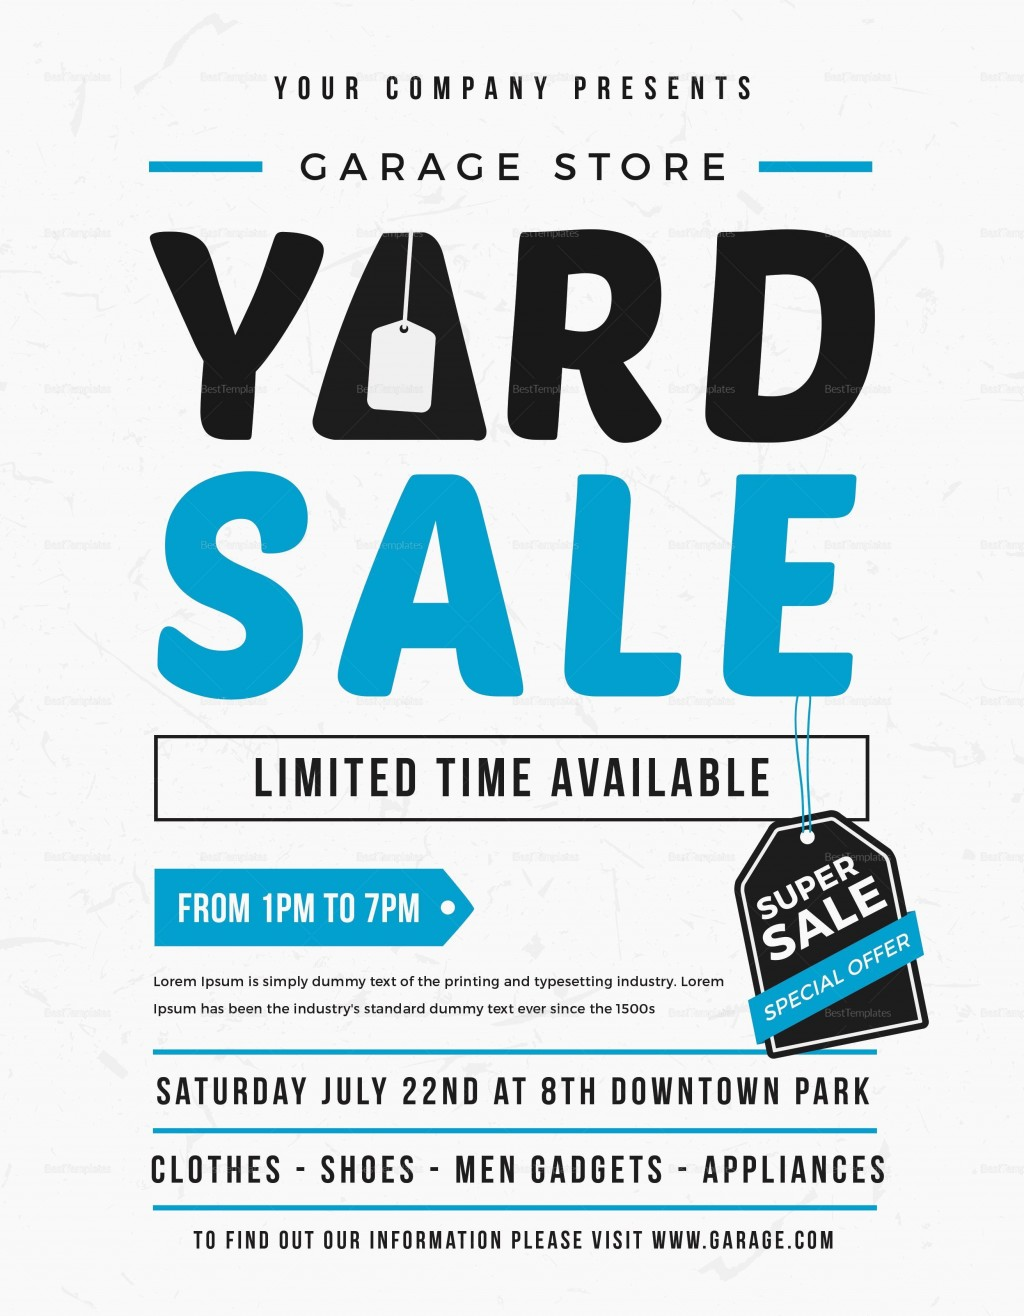 005 Impressive Yard Sale Flyer Template Design  Ad Sample Microsoft Word Garage FreeLarge